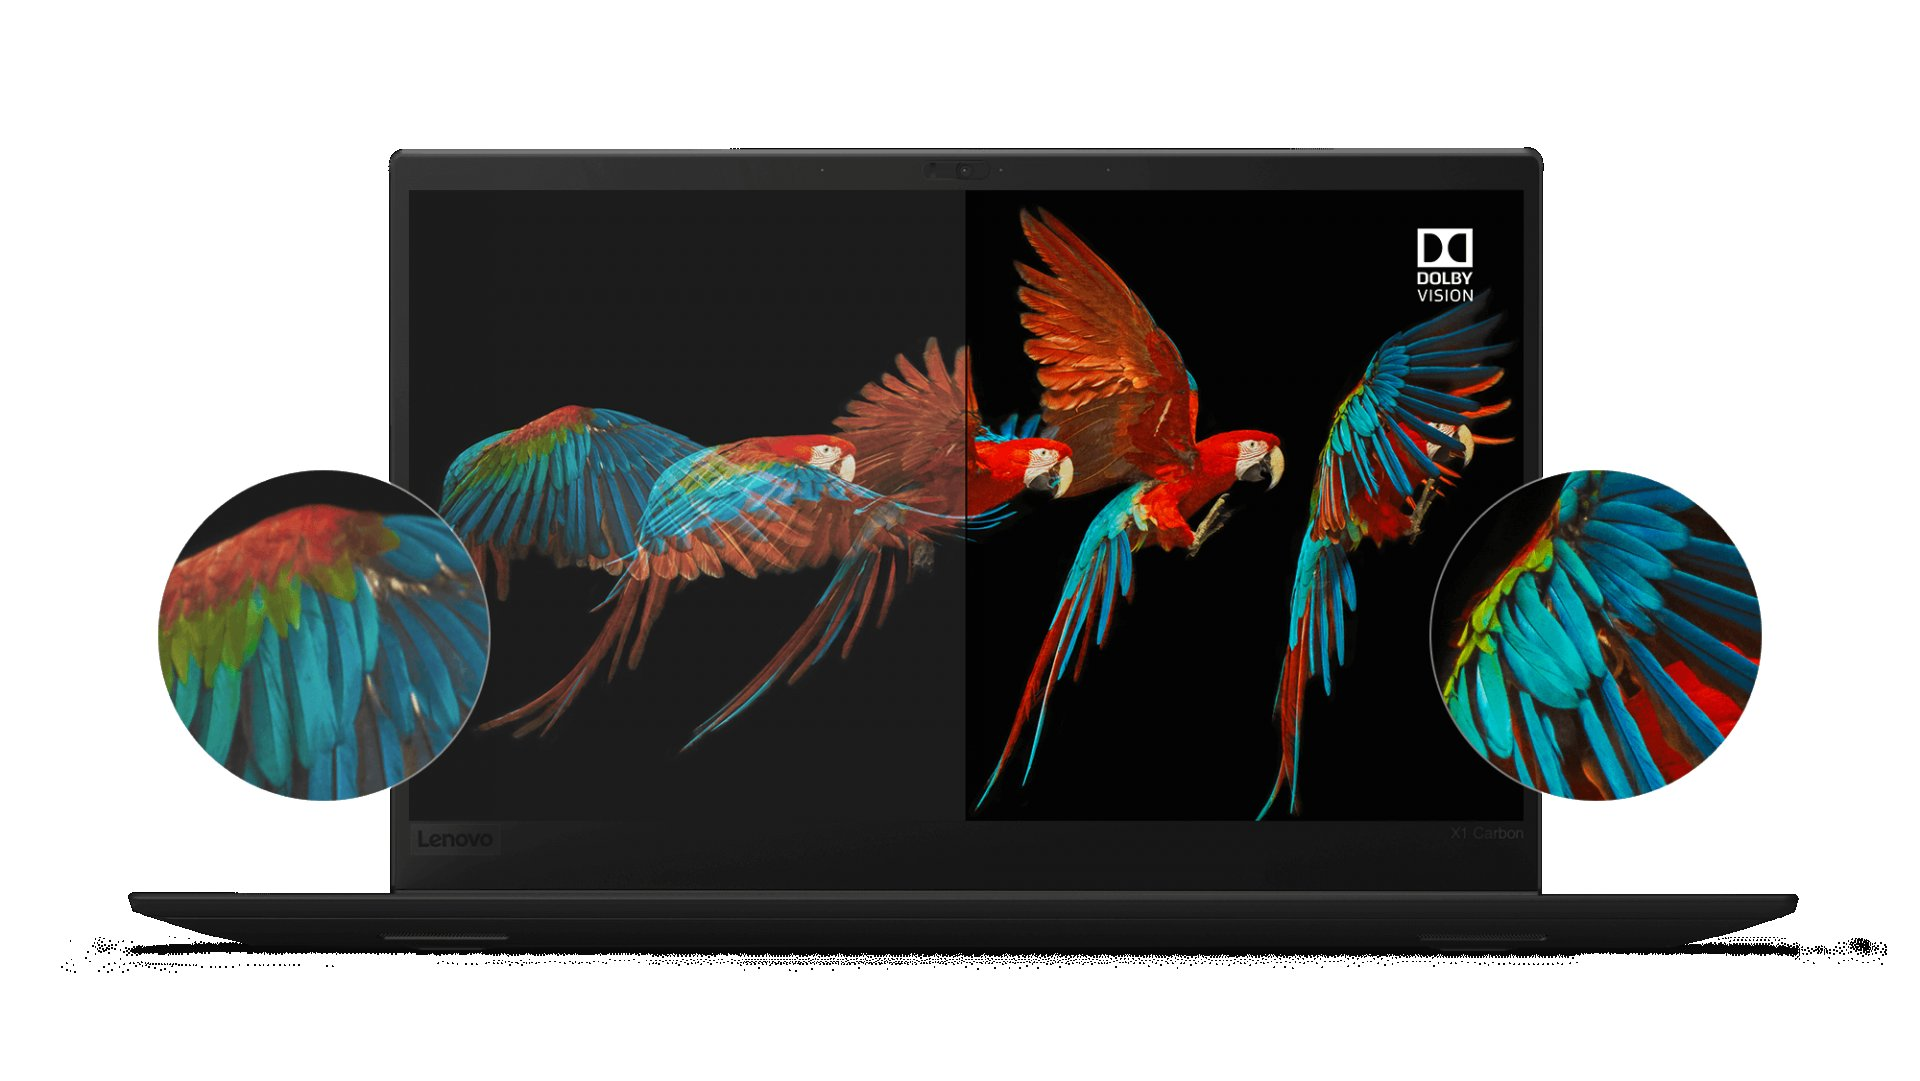 Lenovo ThinkPad X1 Carbon HDR display with Dolby Vision, showing amazing detail and color accuracy of a parrot's wings in flight.